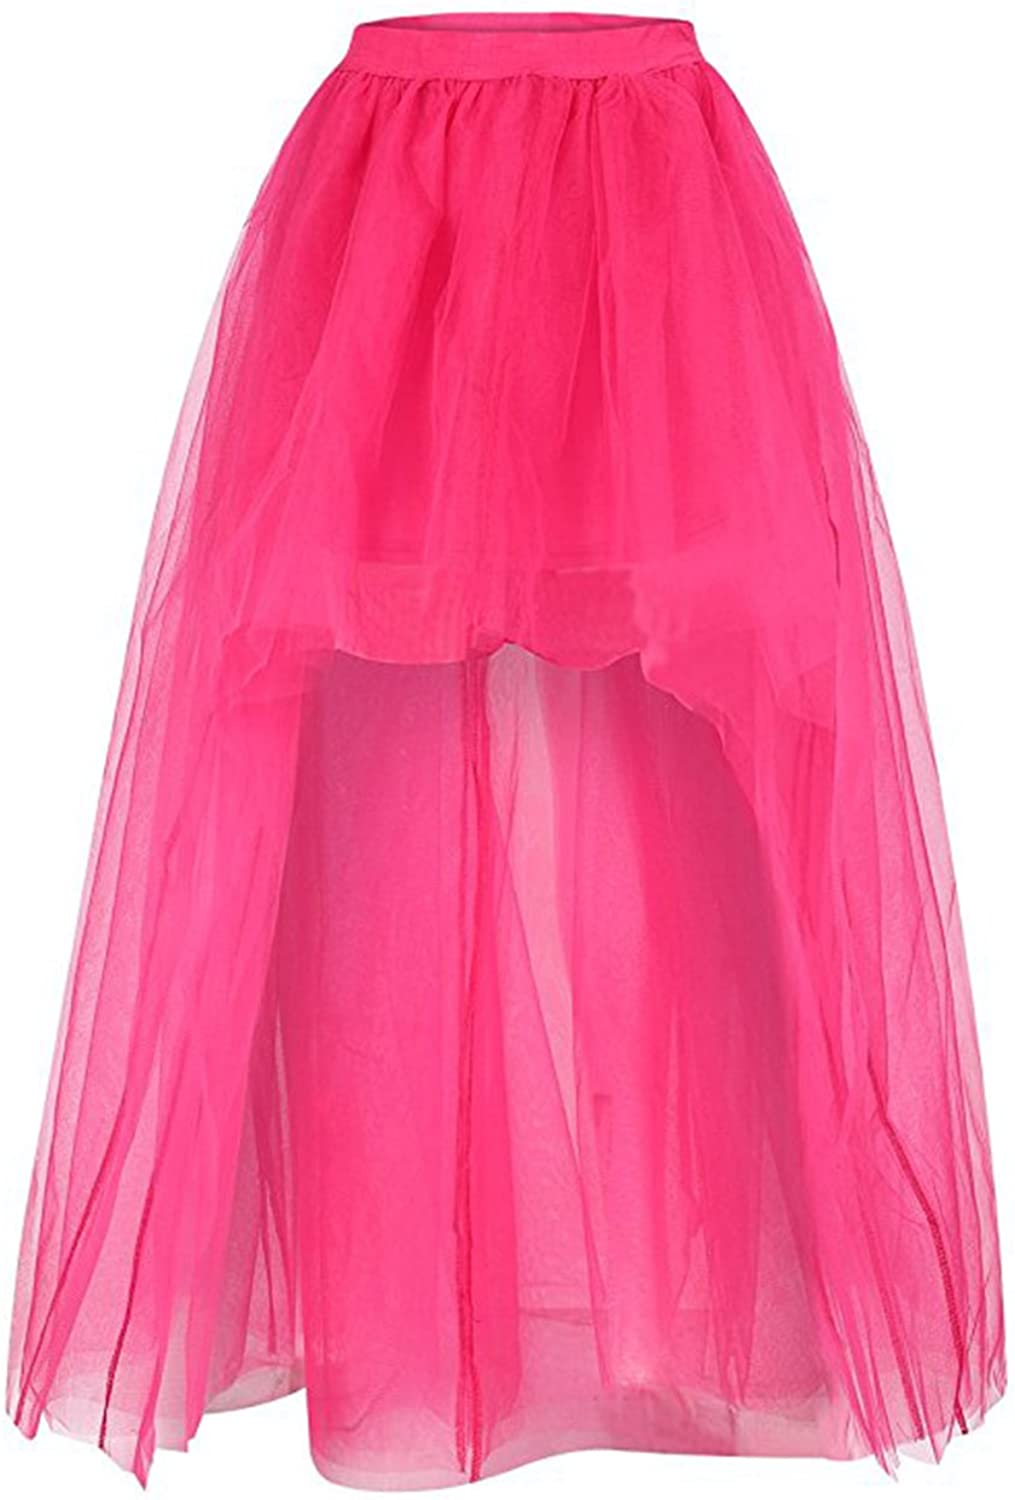 Babyonline High Low Tutu Tulle Skirt Wedding Lowest price challenge Ski Women Fees free!! Party for